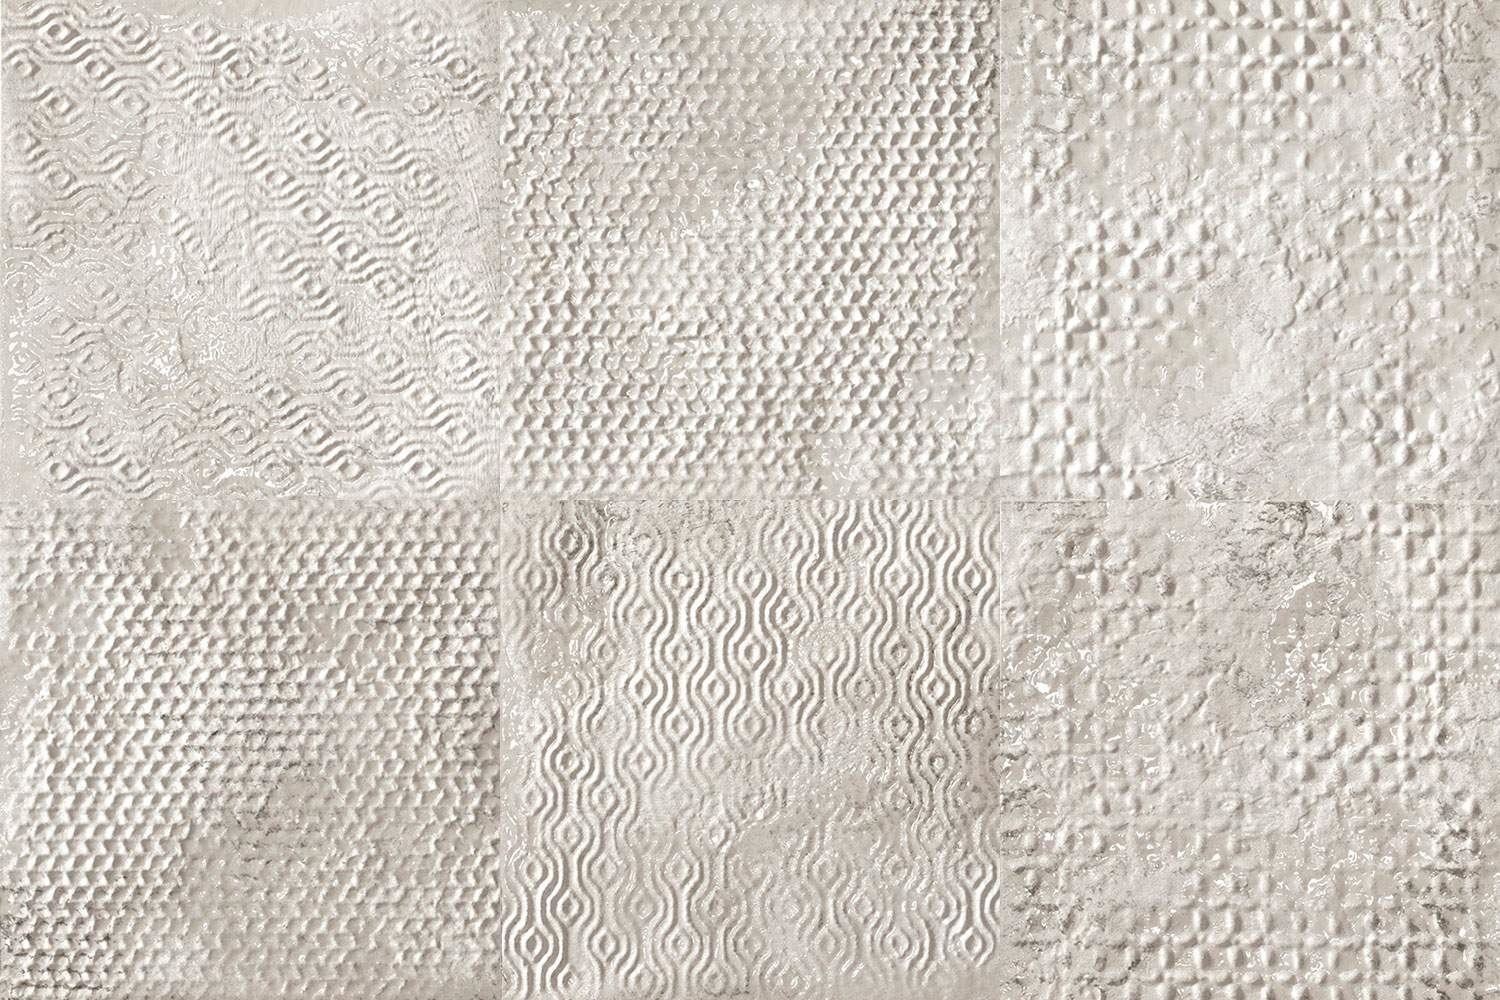 FAP Maku Grid White Inserto Mix 6 40x60